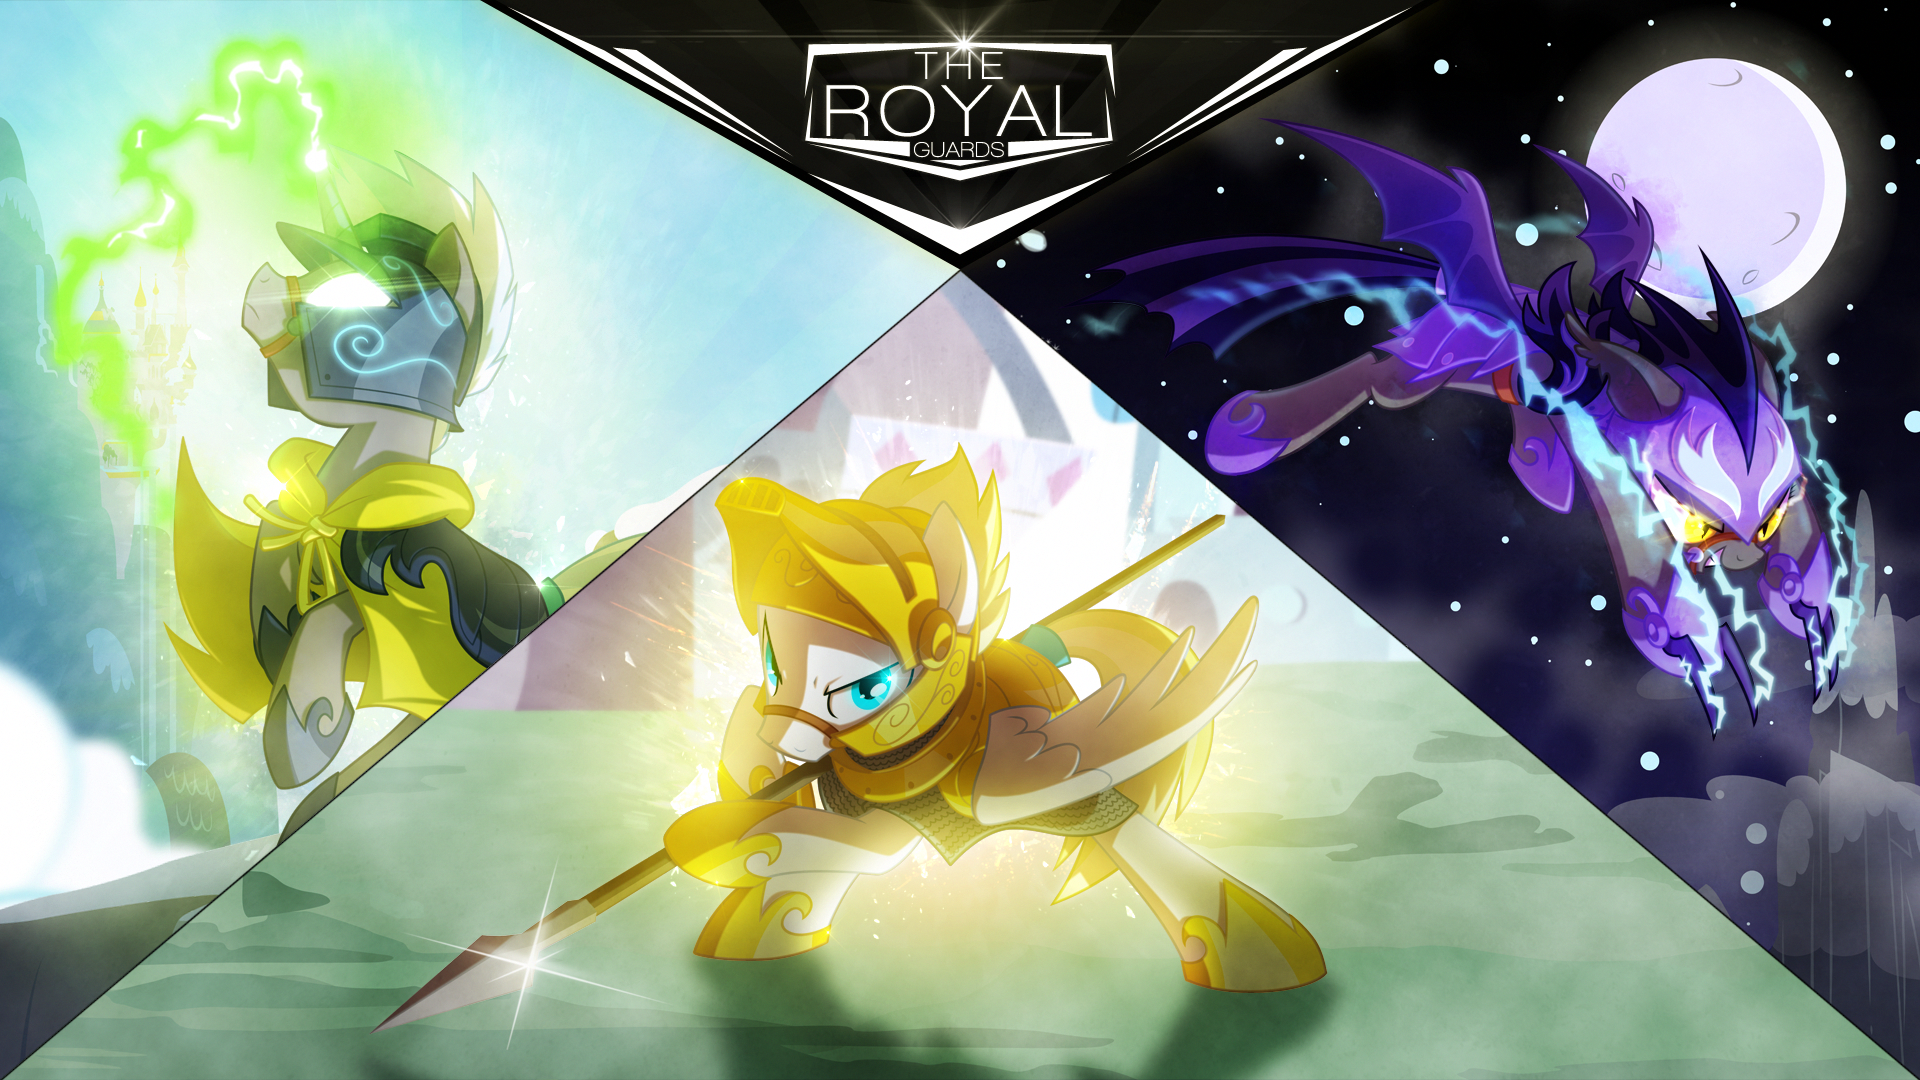 Wallpaper ~ The Royal Guards. by BonesWolbach, Equestria-Prevails, Hellswolfeh, Mackaged, Proenix and Qsteel